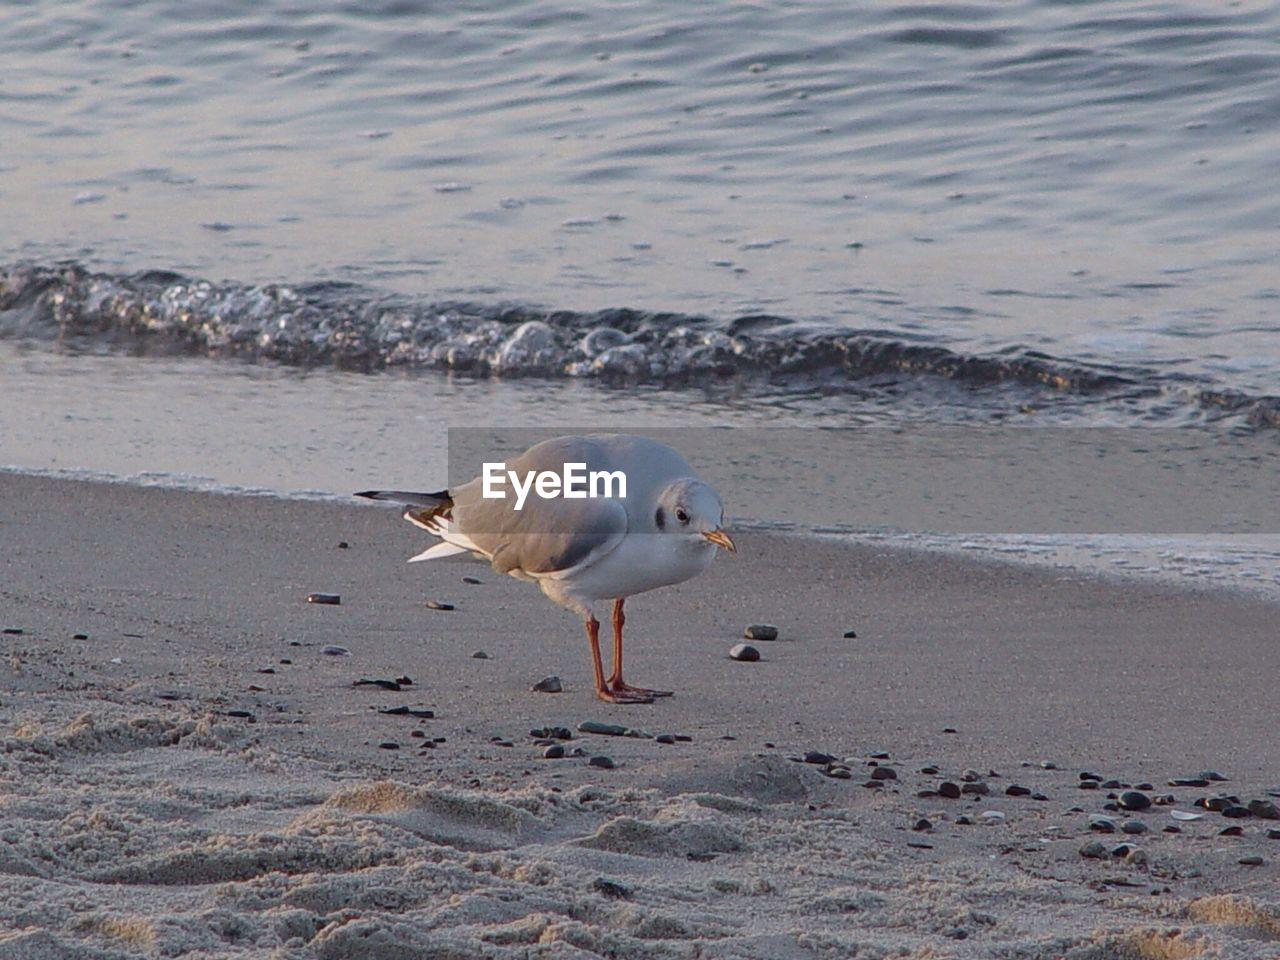 beach, one animal, bird, animal themes, shore, sand, animals in the wild, seagull, water, sea, animal wildlife, black-headed gull, nature, day, no people, outdoors, wave, beauty in nature, close-up